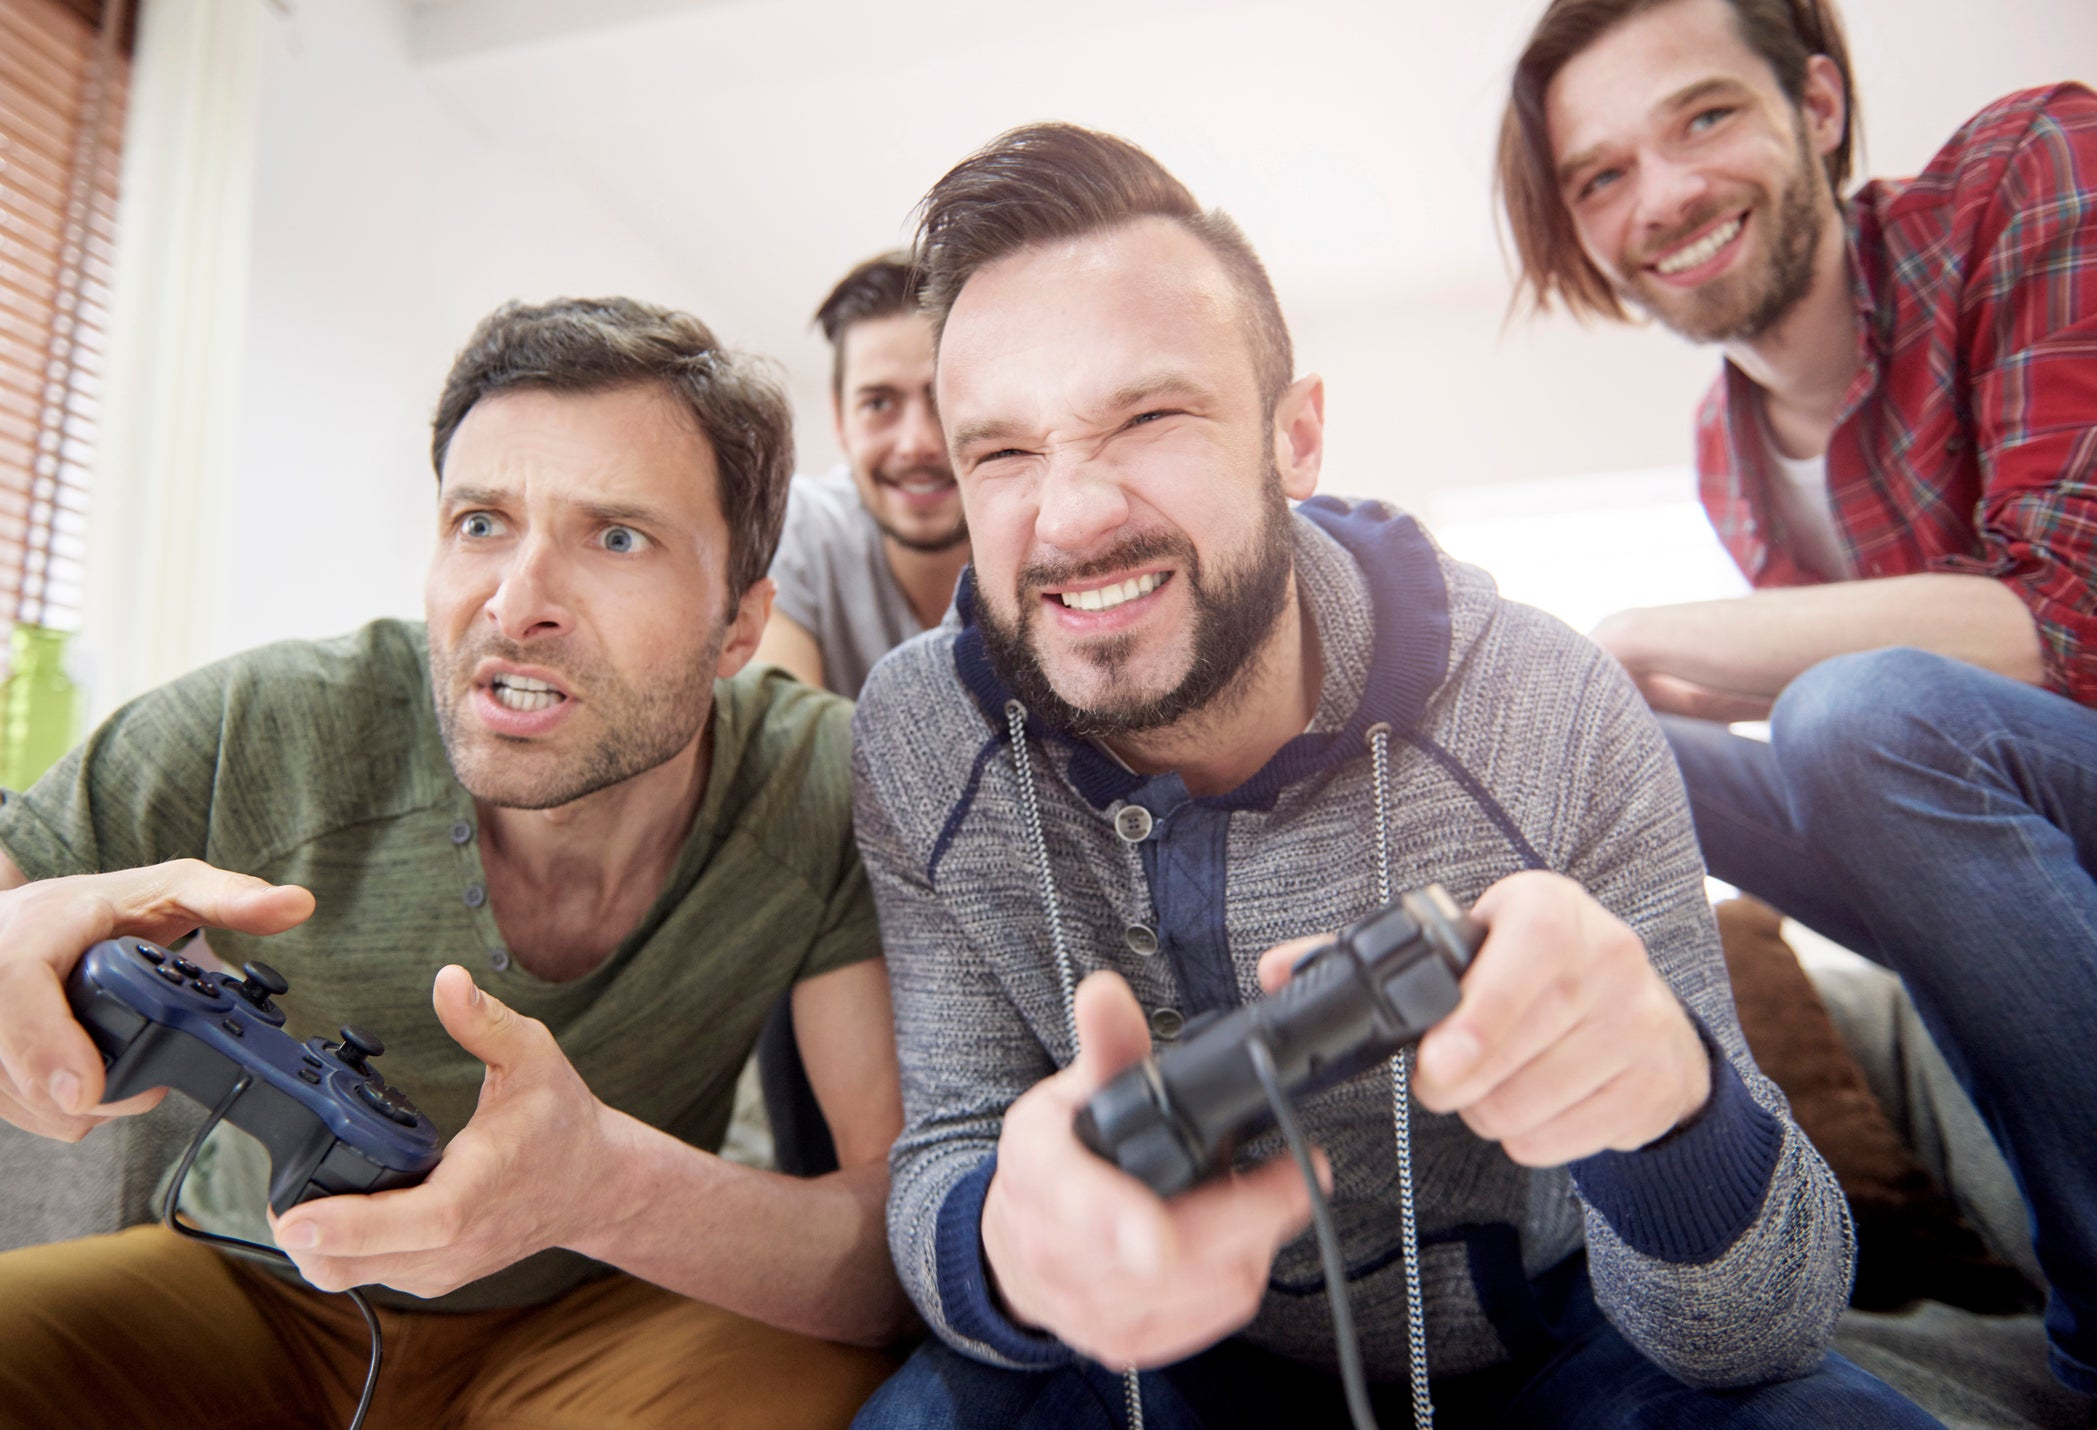 A group of young men sitting on a couch playing video games.